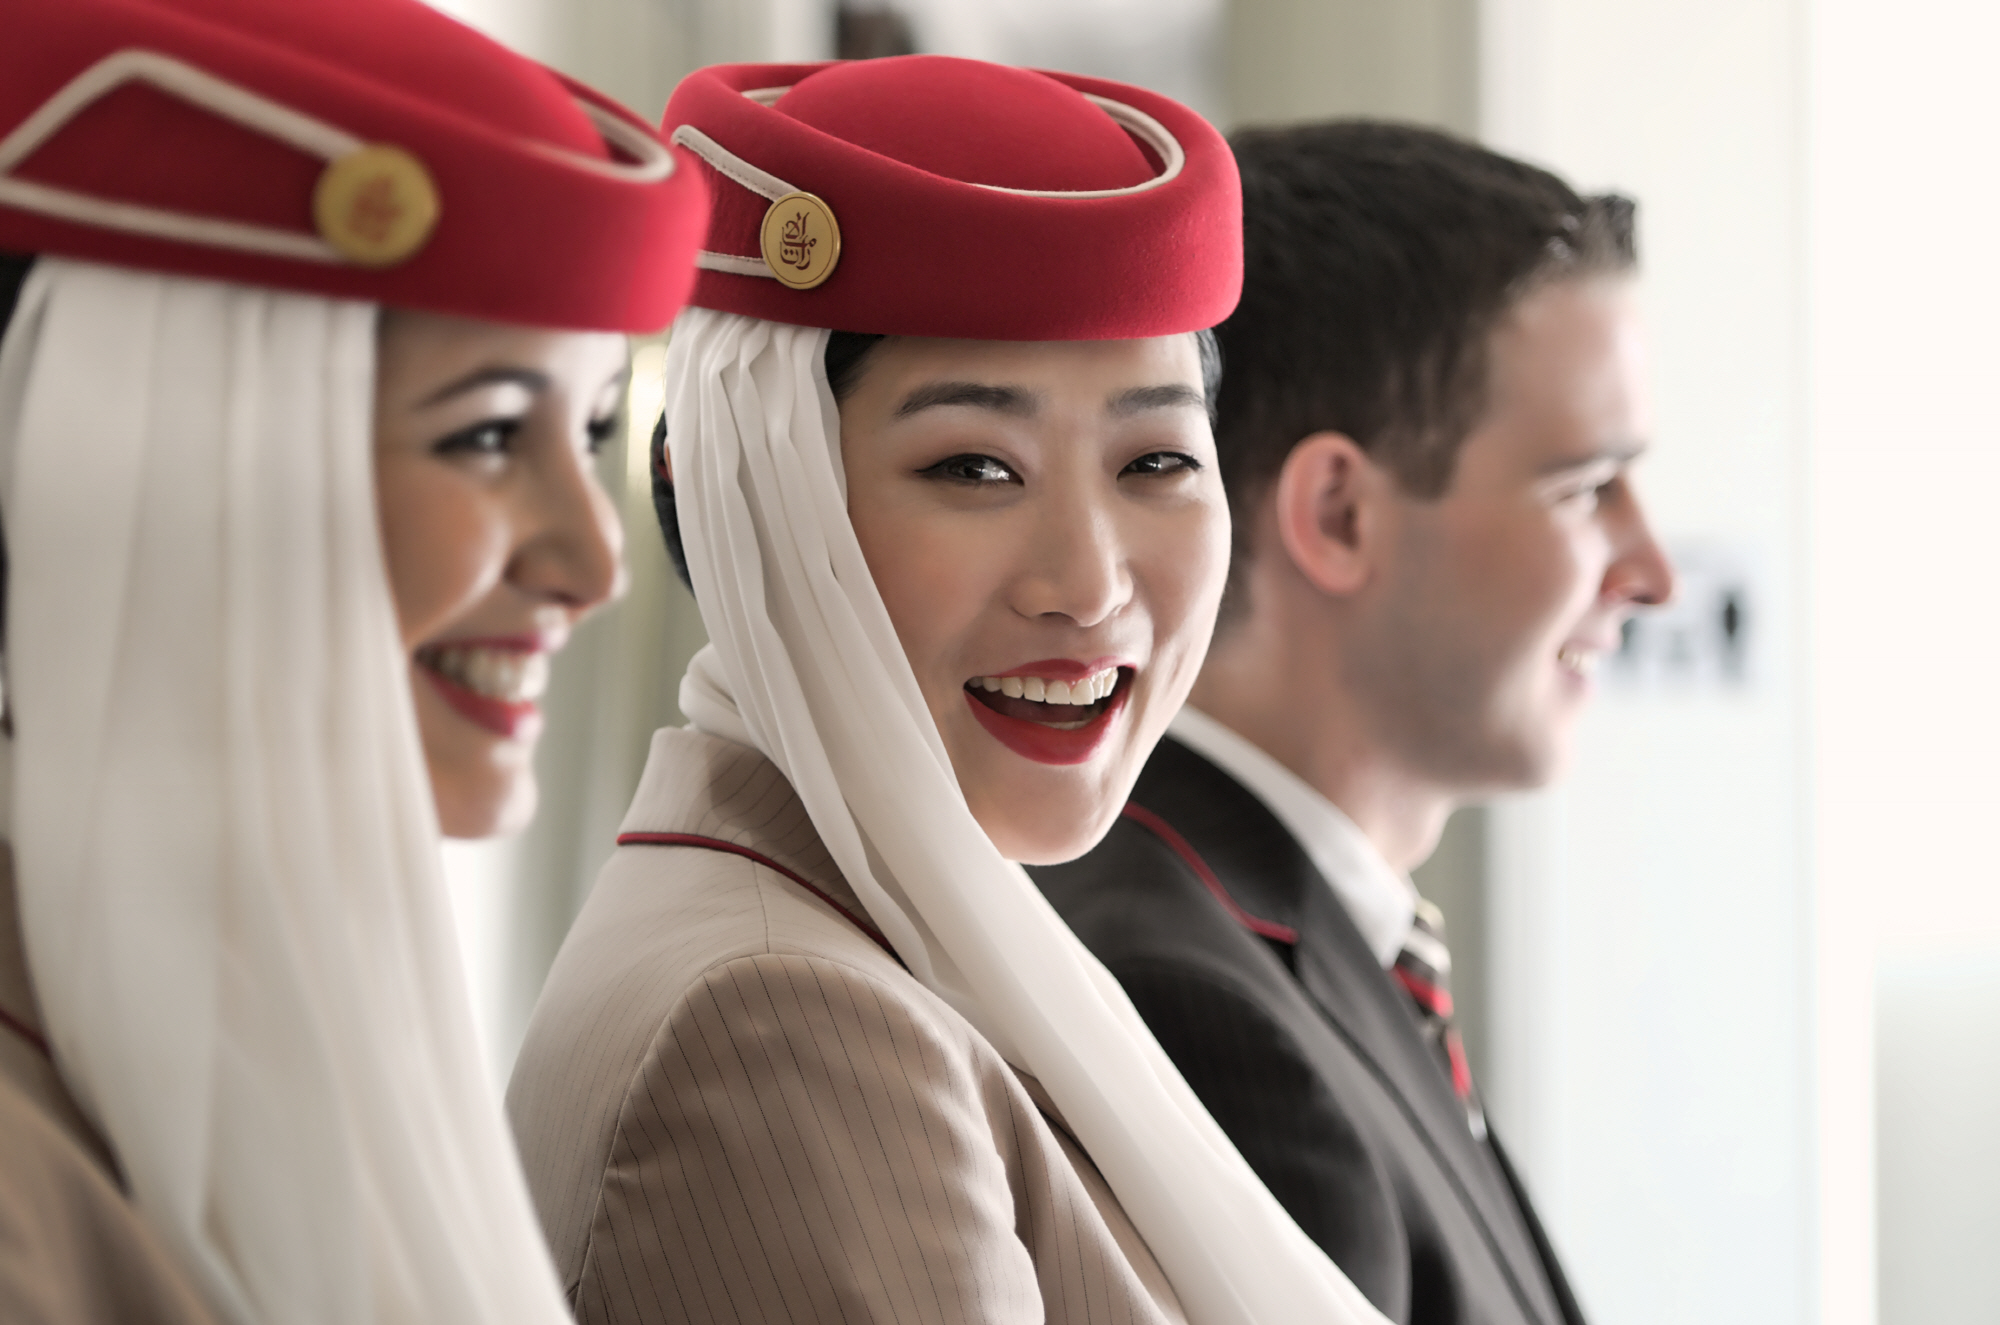 Emirates Cabin Crew and Flight attendants